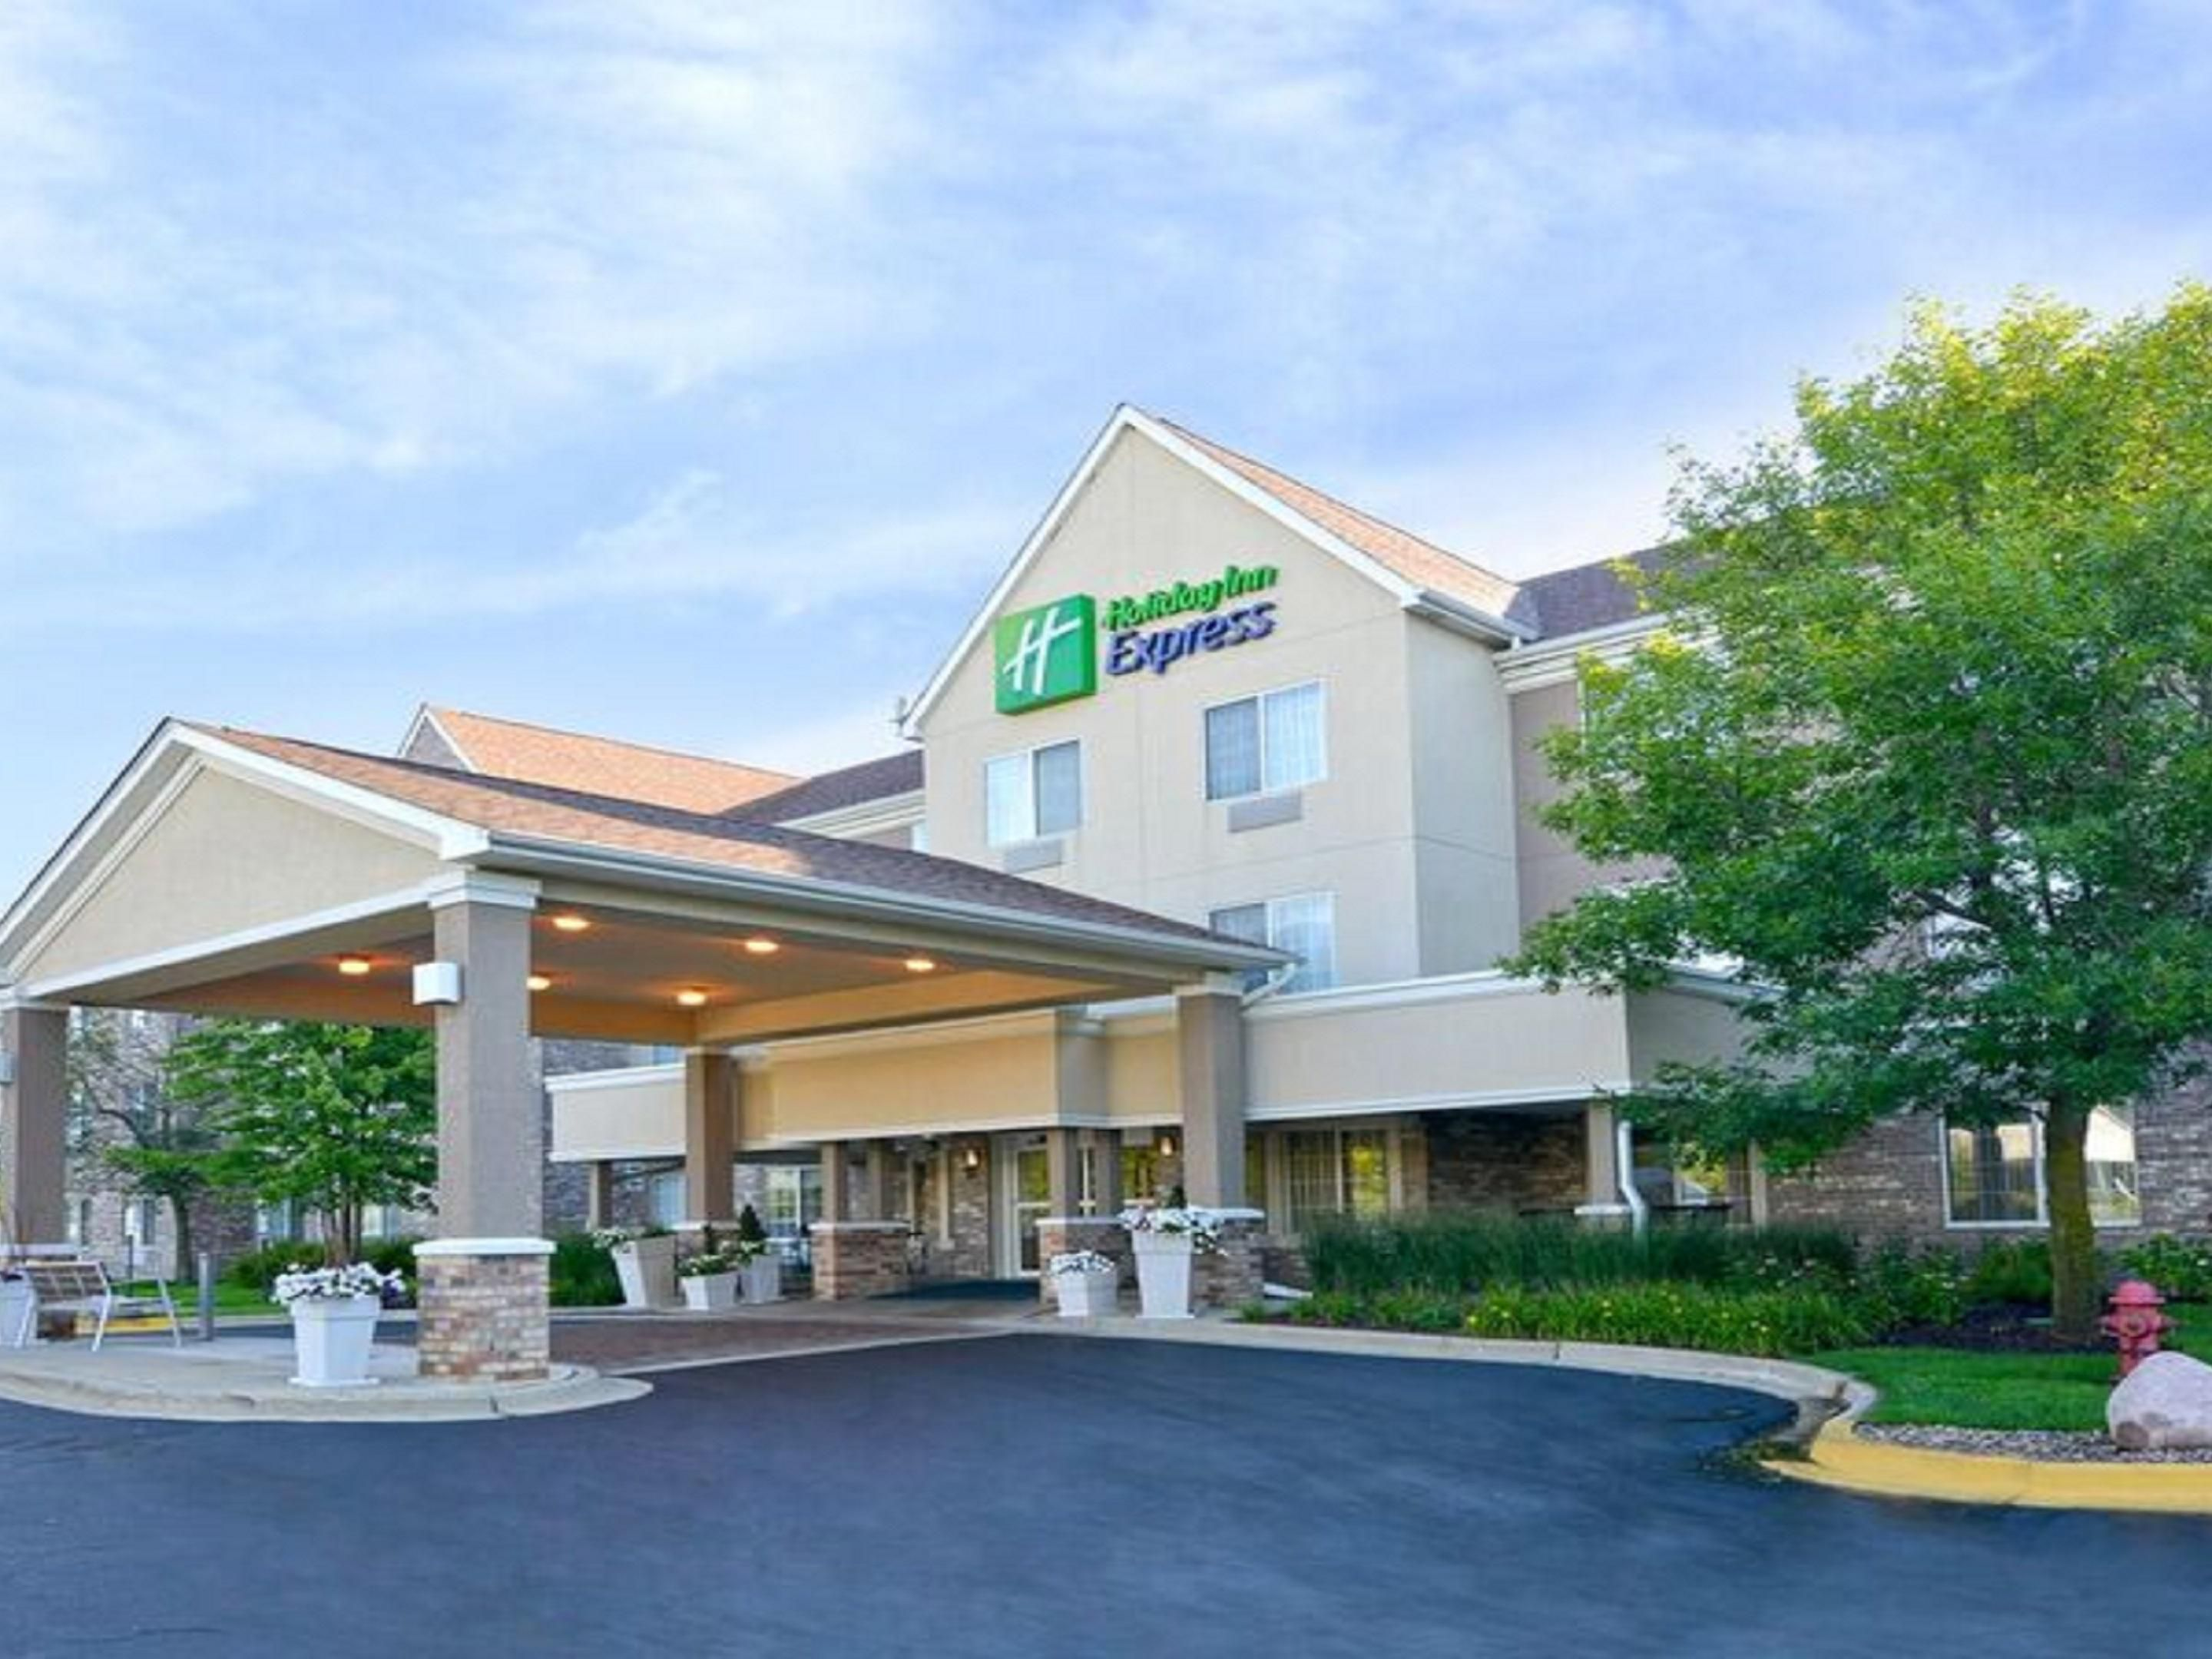 Holiday Inn Express Arlington Heights Hotels | Budget Hotels